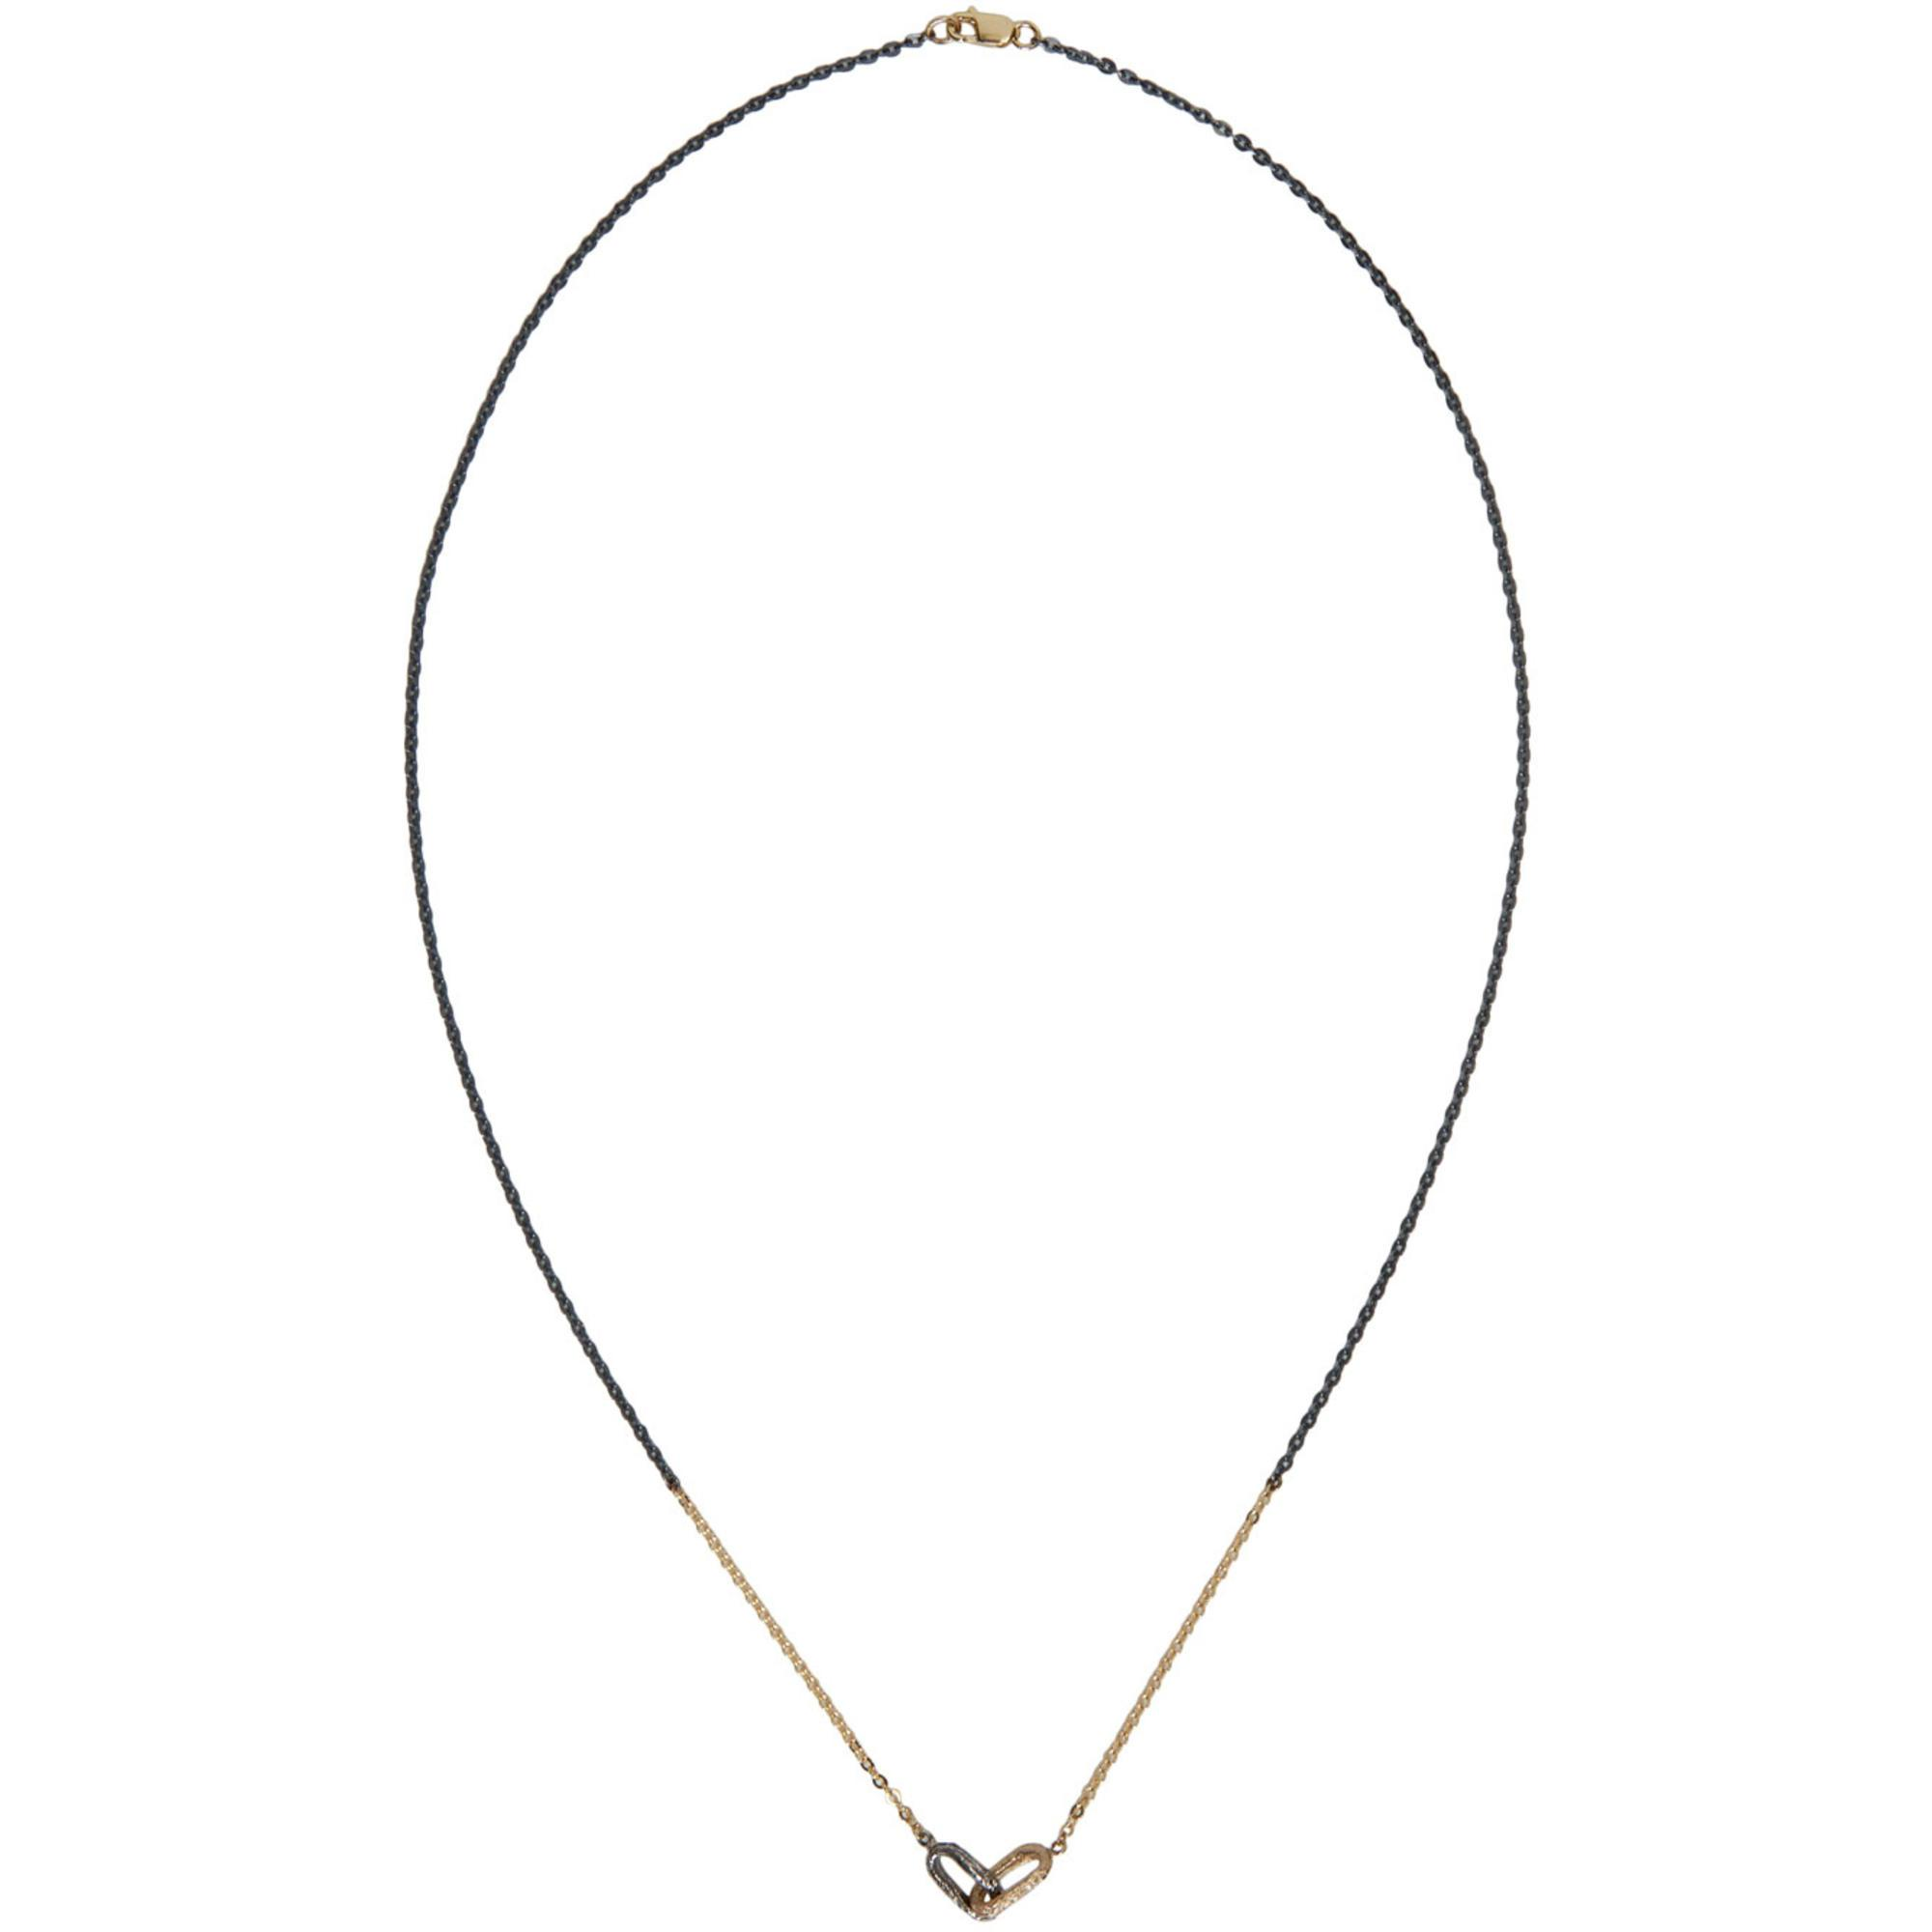 Silver and Rose Gold Double Link Necklace Pearls Before Swine r0iB9